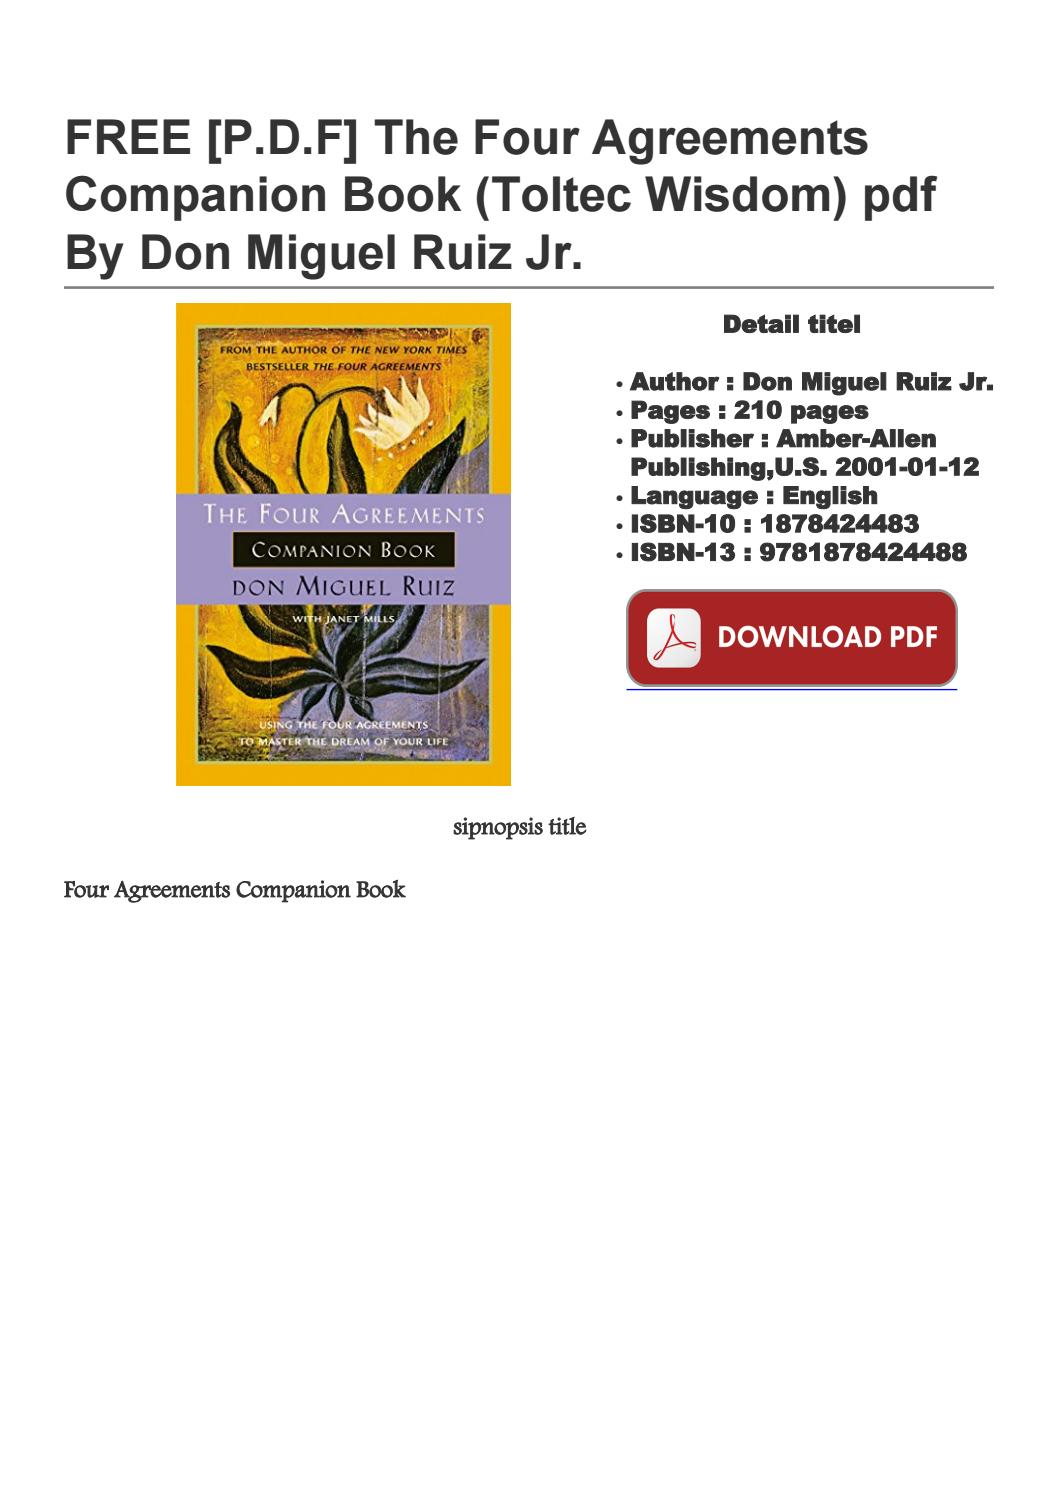 Four Agreements Book Free Download Free Pdf The Four Agreements Companion Book Toltec Wisdom Pdf